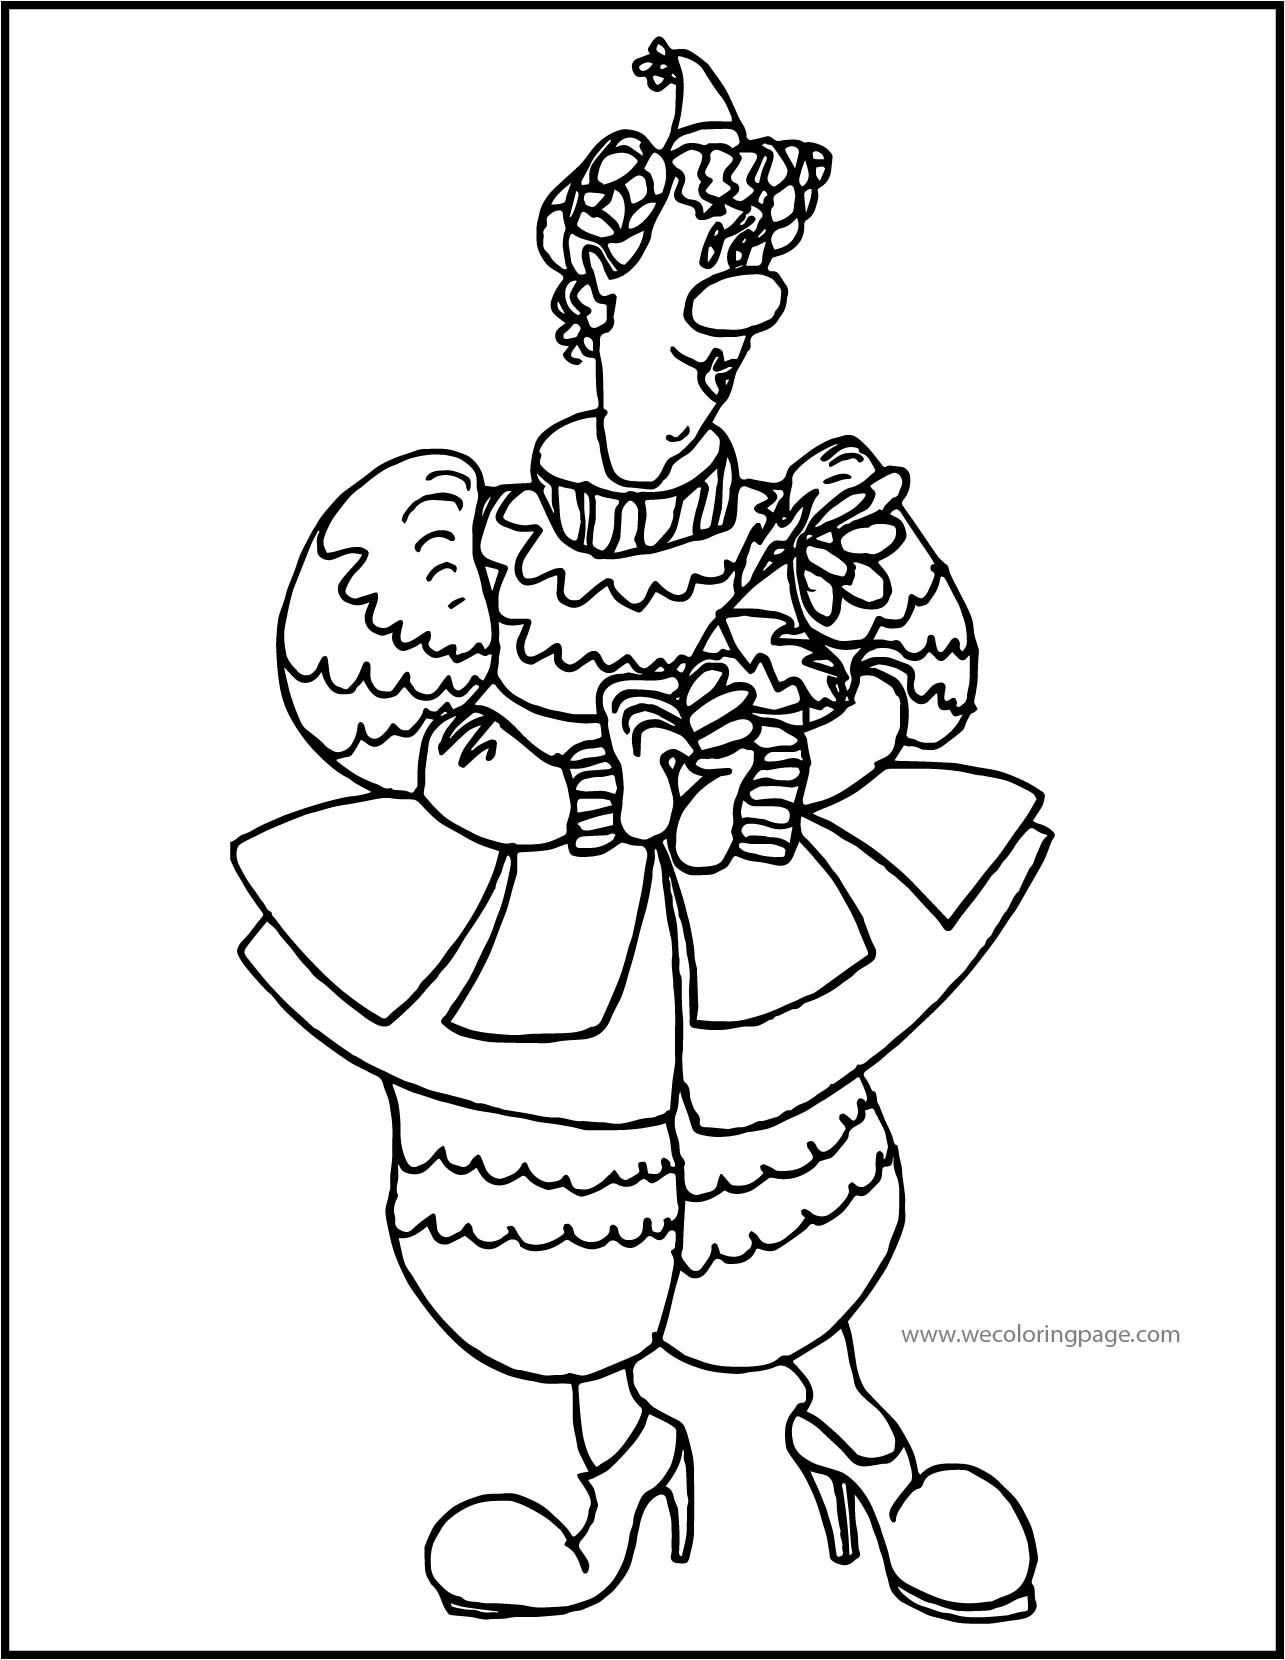 Clown Coloring Page WeColoringPage 018